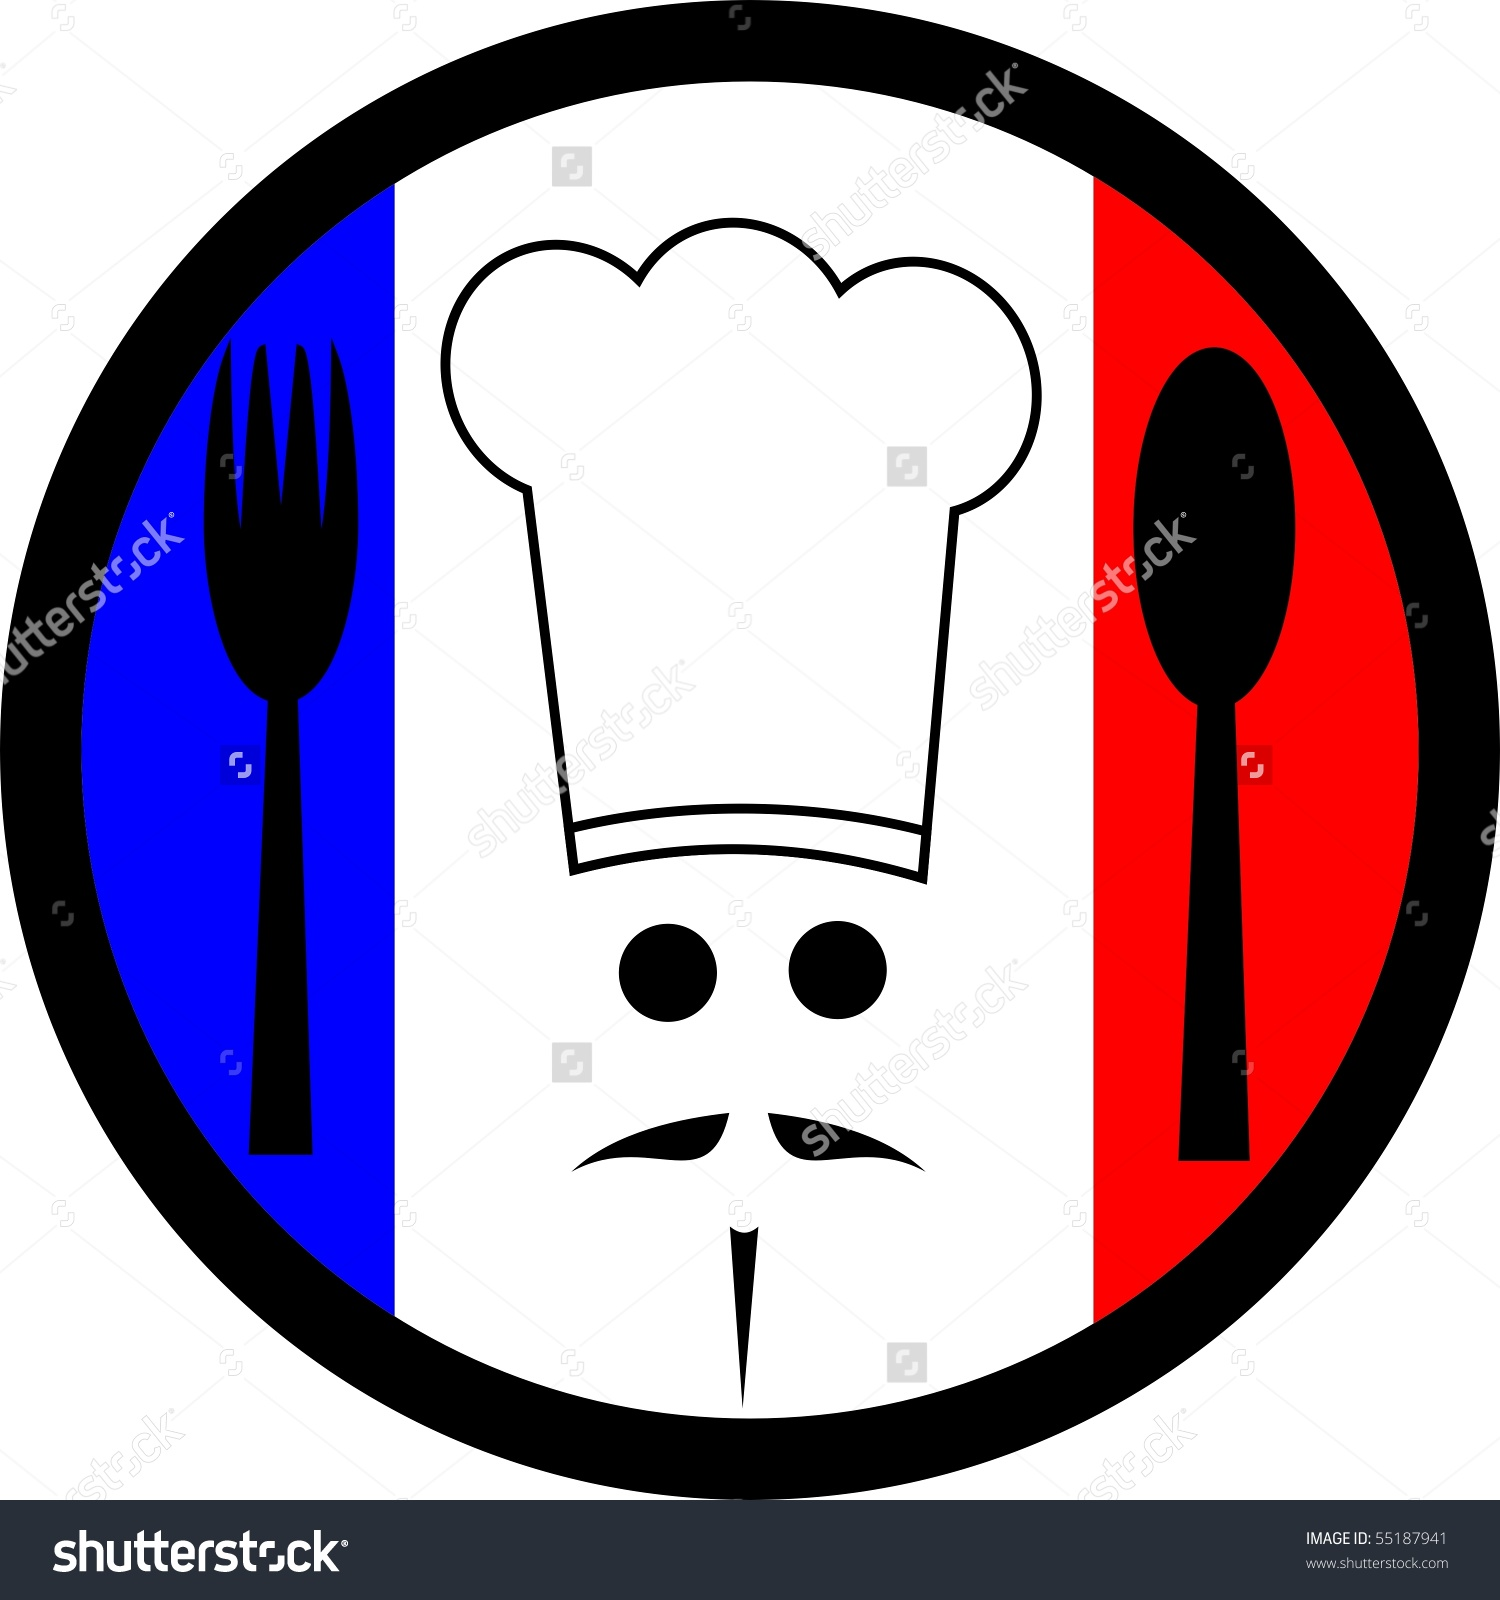 French chef clipart clip black and white download French Chef Stock Illustration 55187941 - Shutterstock clip black and white download